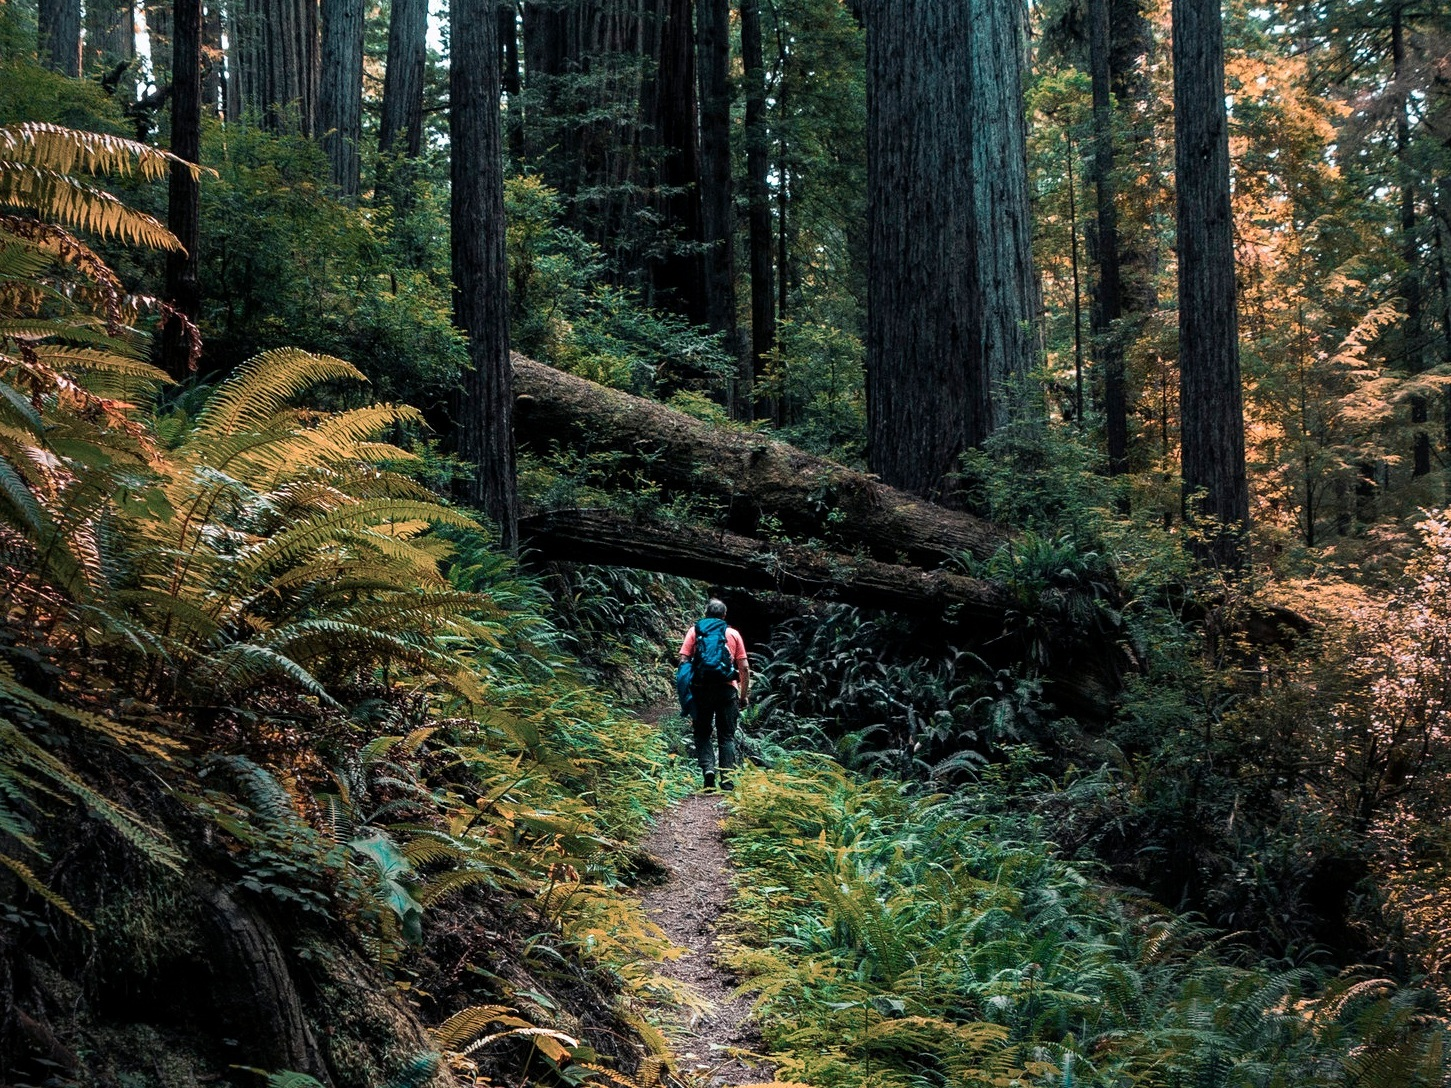 REDWOOD NATIONAL PARK - Most people know Redwood as home to the tallest trees on Earth. The parks also protect vast prairies, oak woodlands, wild riverways, and nearly 40 miles of rugged coastline.